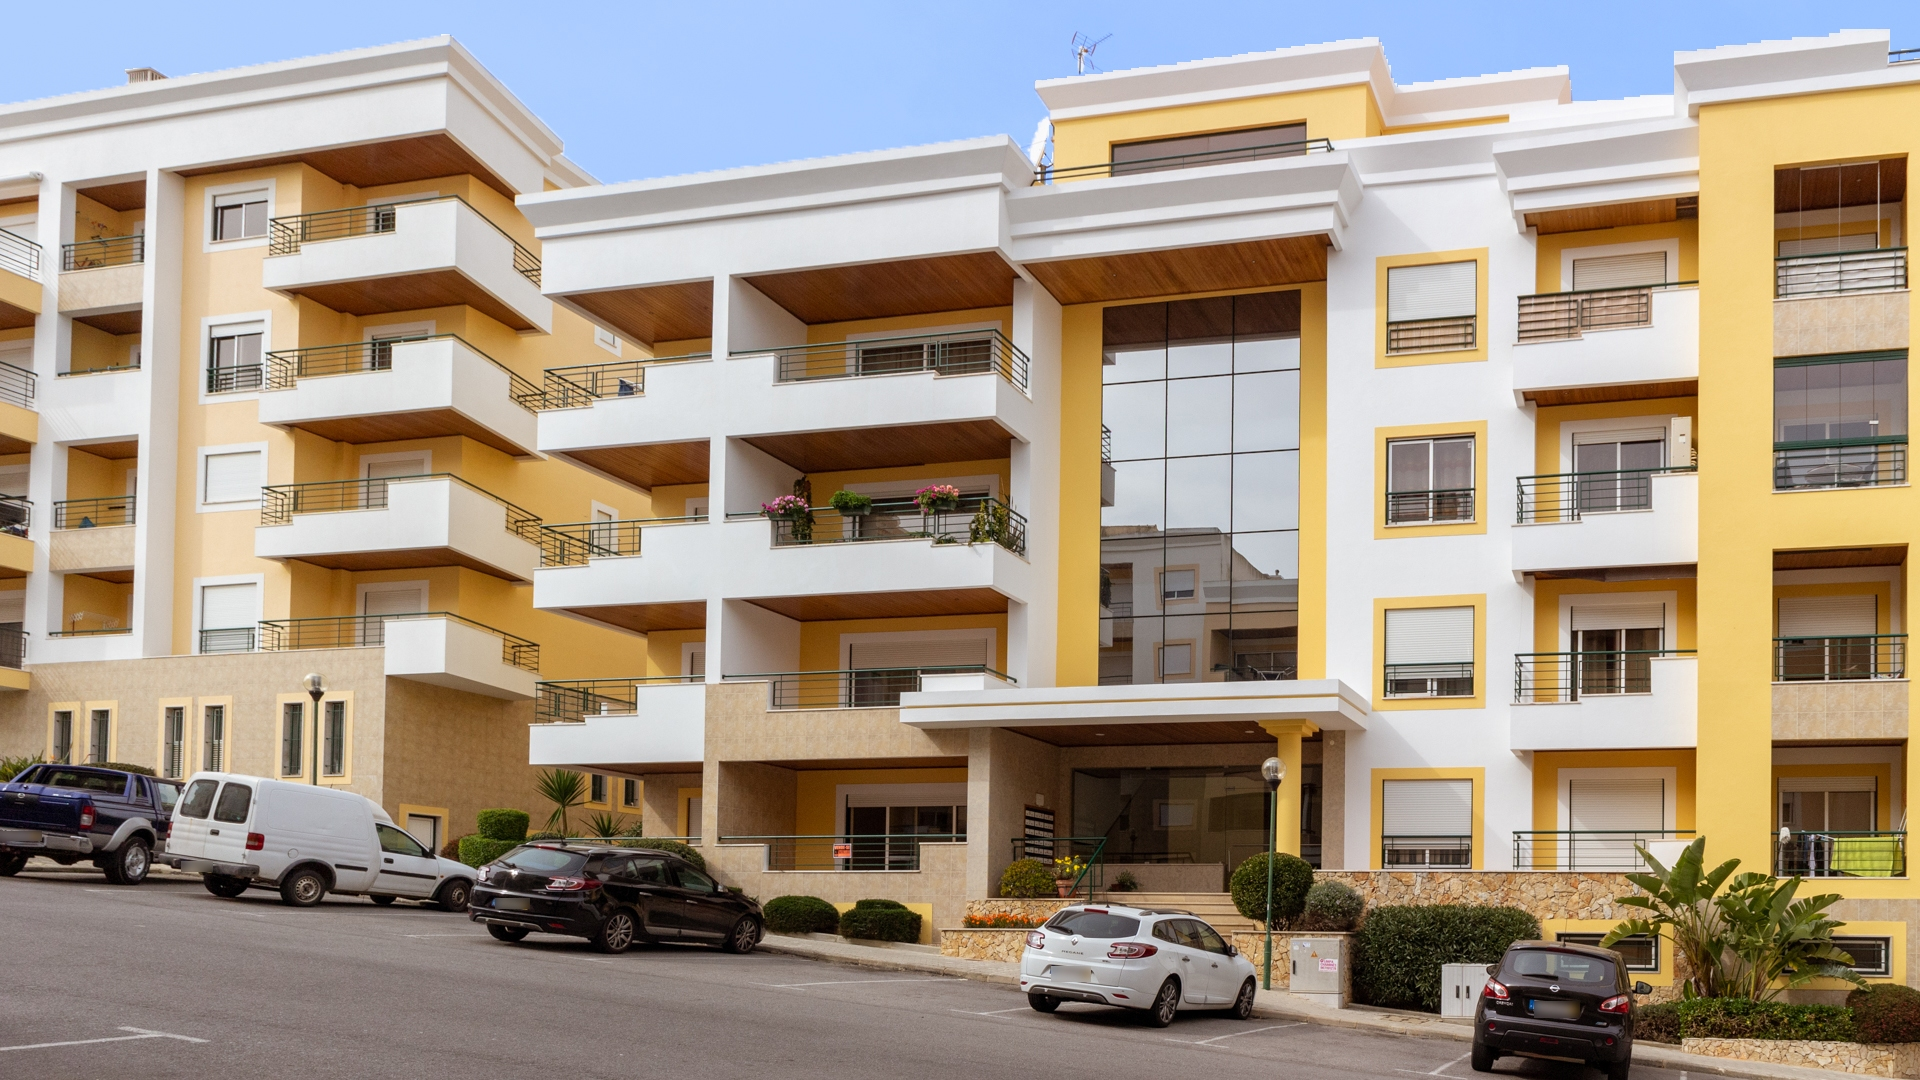 3 bedroom apartment with garage in Lagos | LG1375 Spacious 3 bedroom apartment with large terraces and garage with lockable storage room, set on a quiet urbanization walking distance to Lagos.